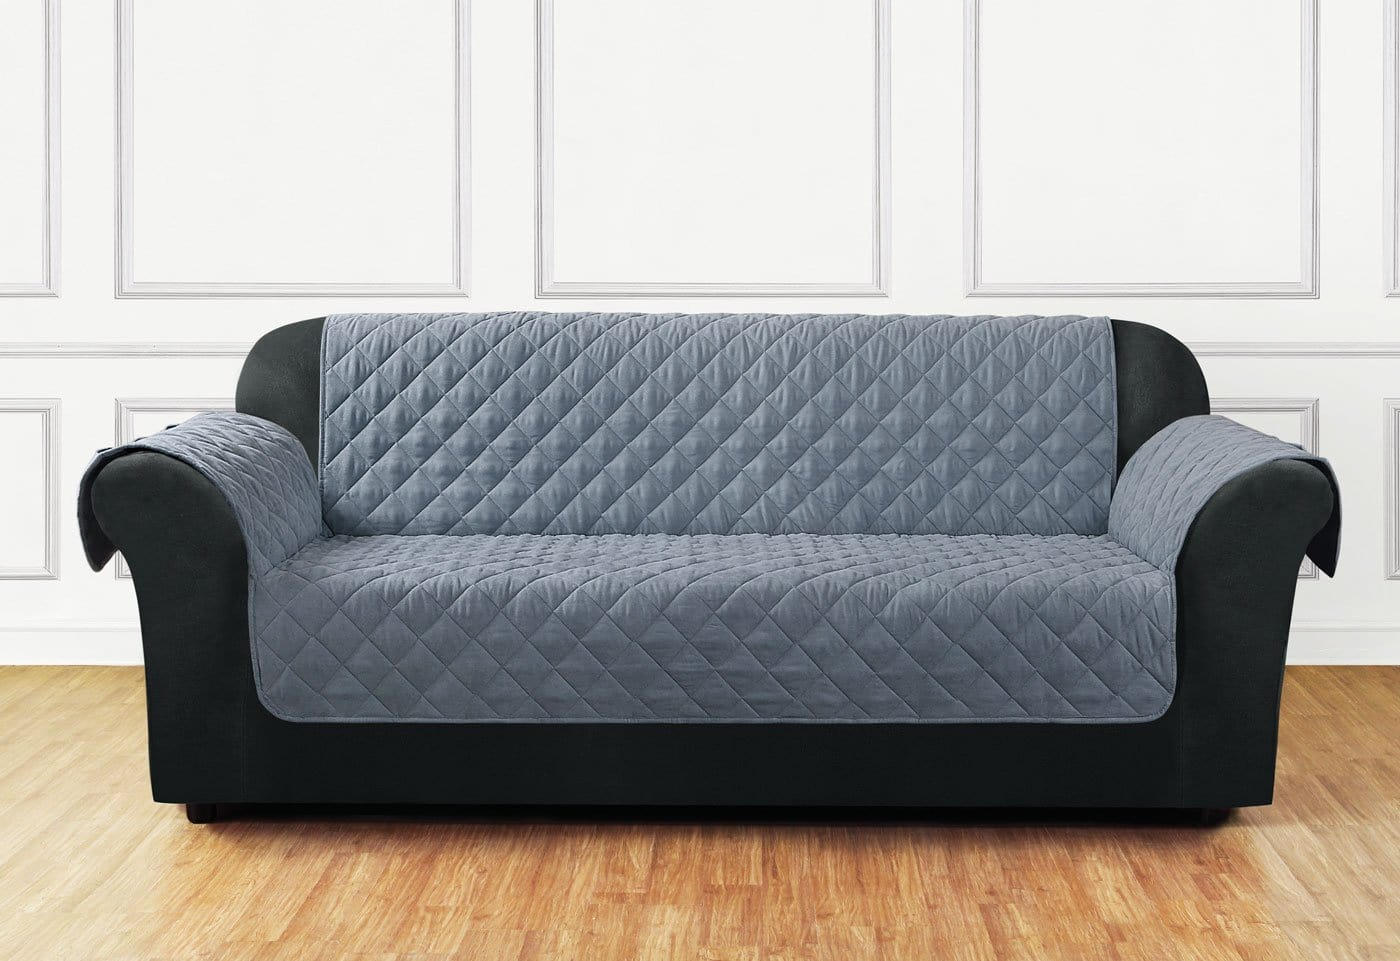 Breathable Mesh Sofa Furniture Cover